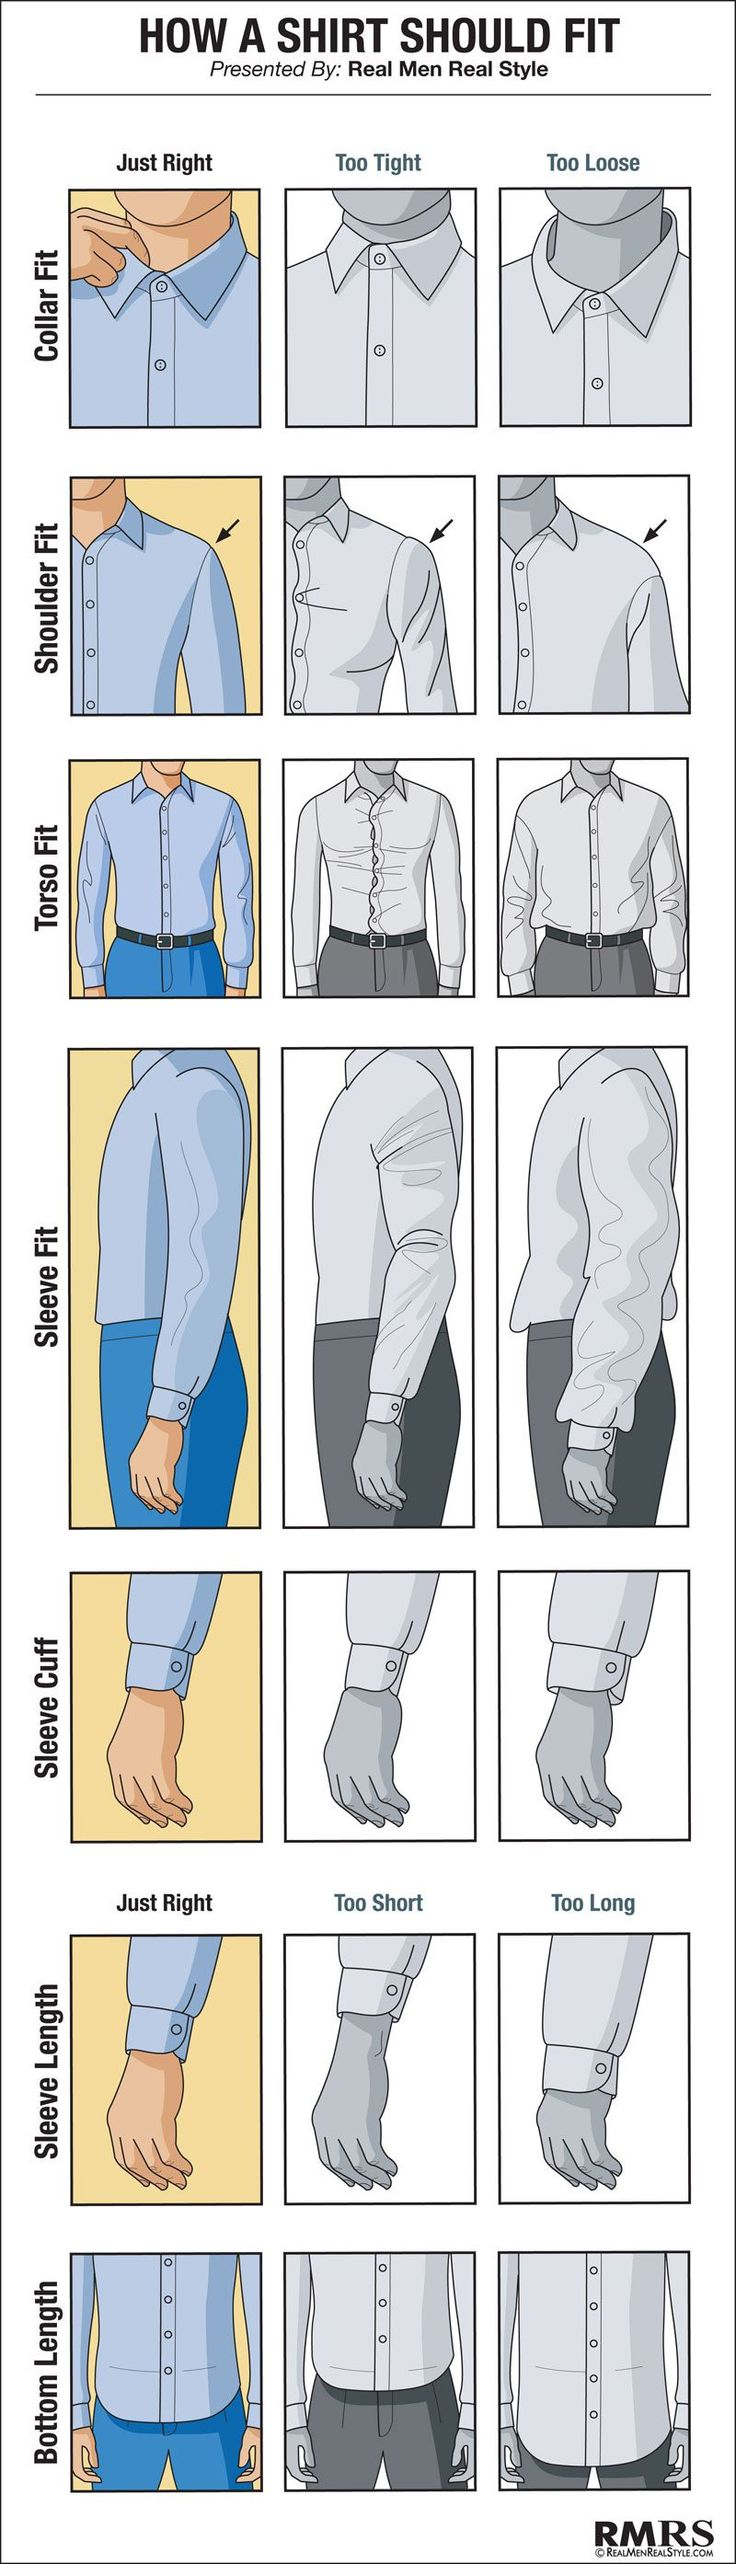 How A Dress Shirt Should Fit Infographic – Men's Proper Fitting Dress Shirts (via @Antonio Centeno)